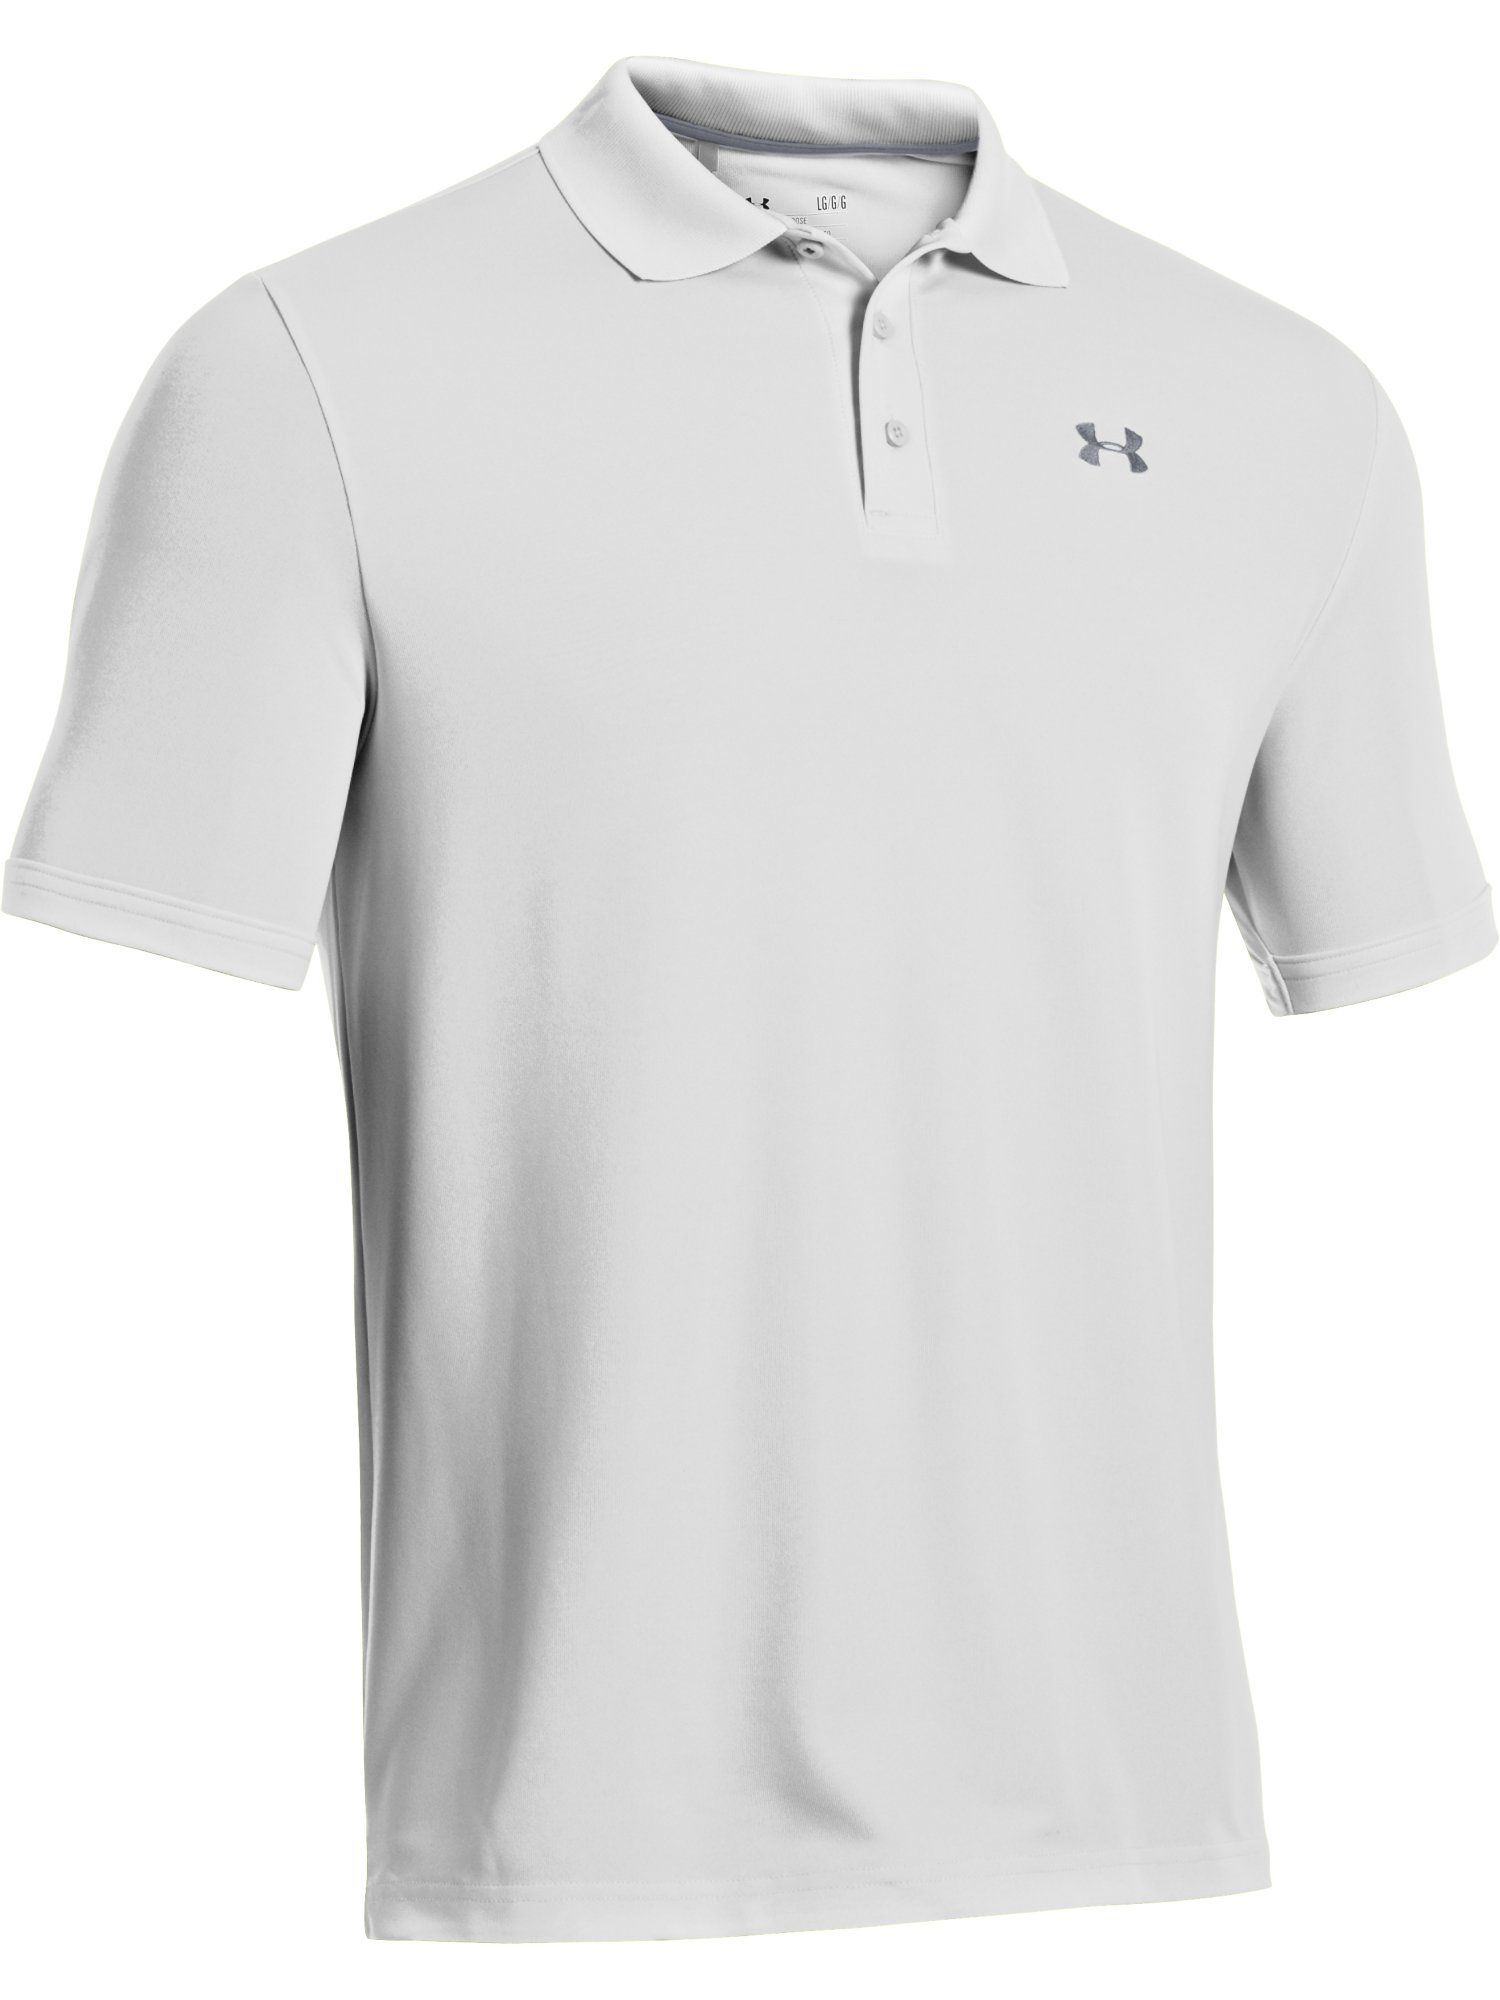 Men's Under Armour Performance Polo, Optic White